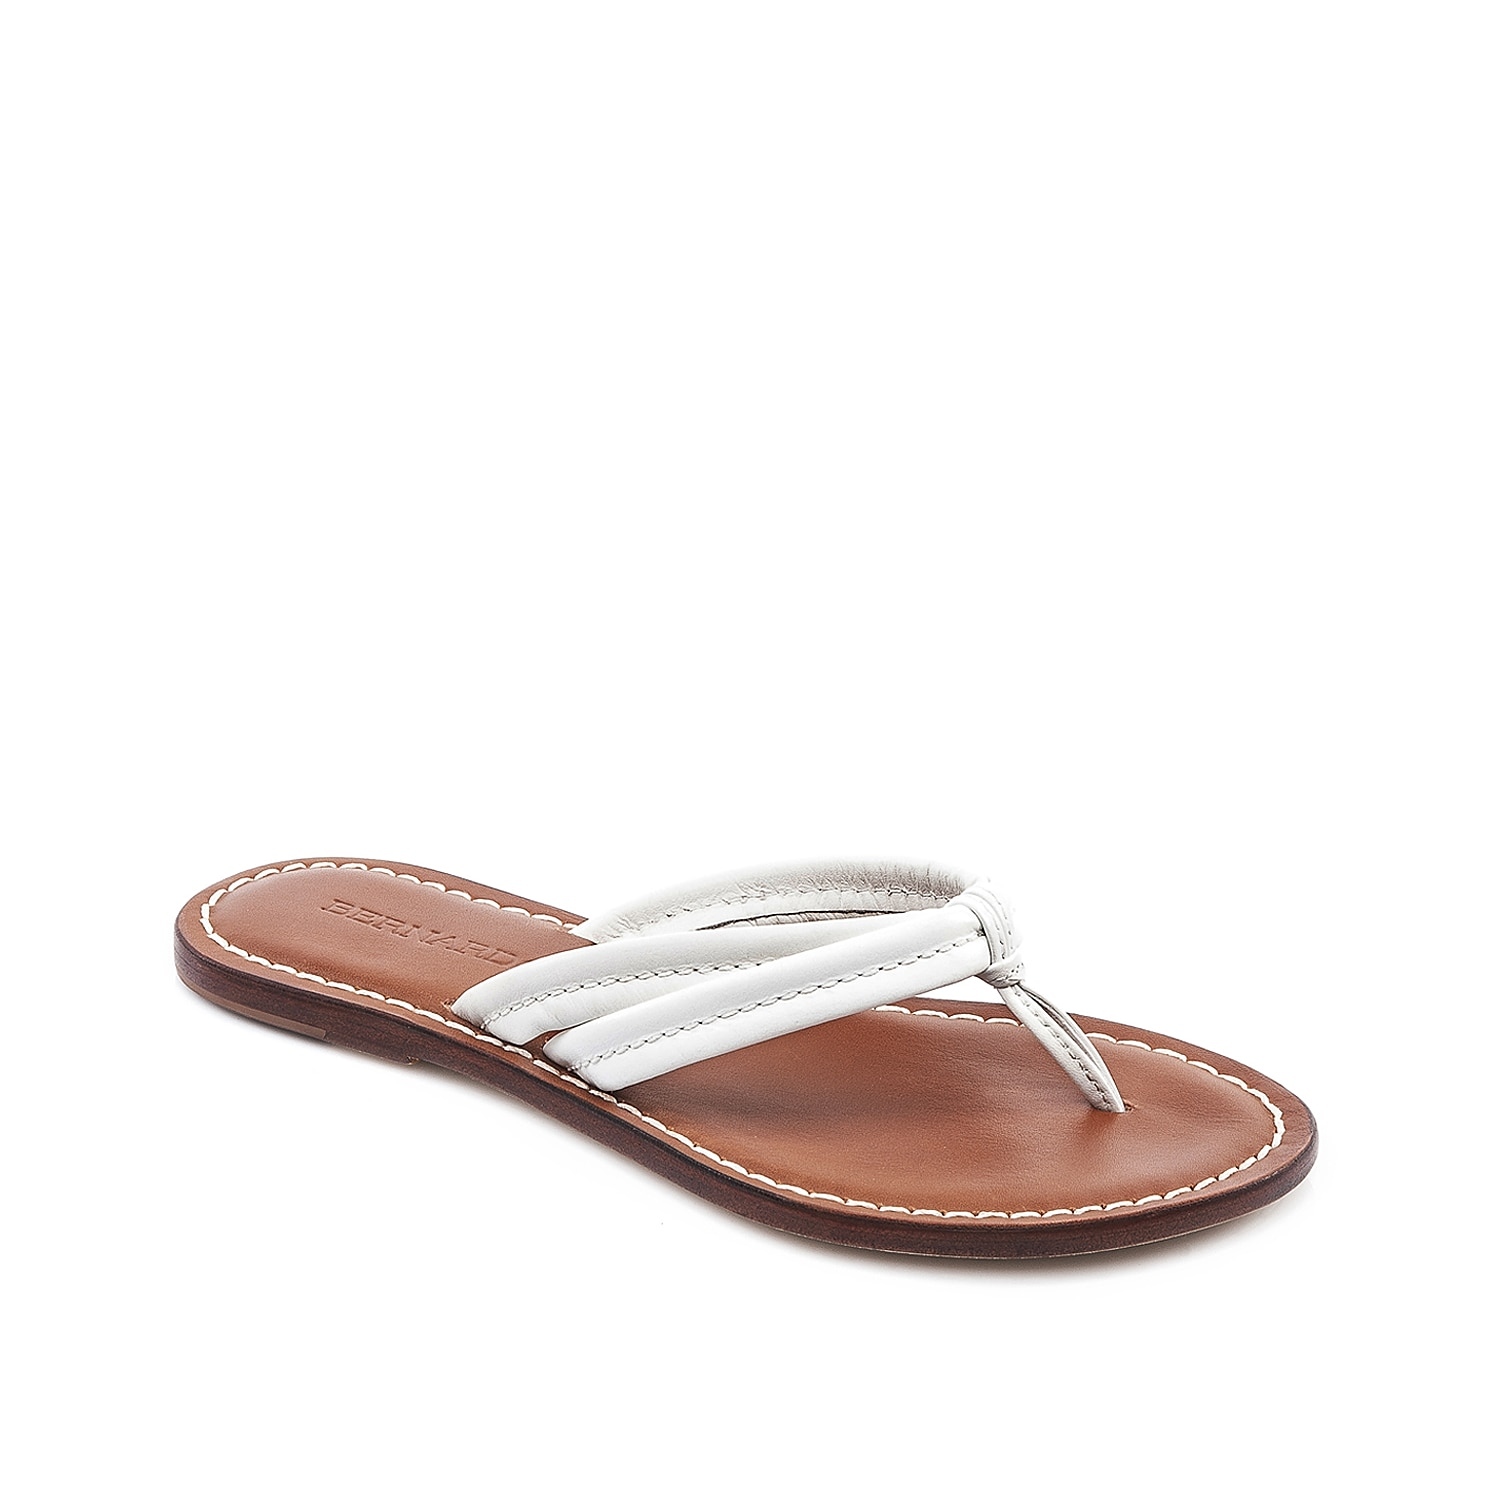 Stay savvy-chic this season in the Miami flat sandal from Bernardo. This pretty pair features leather thong straps that will go great with a printed maxi and sunnies!